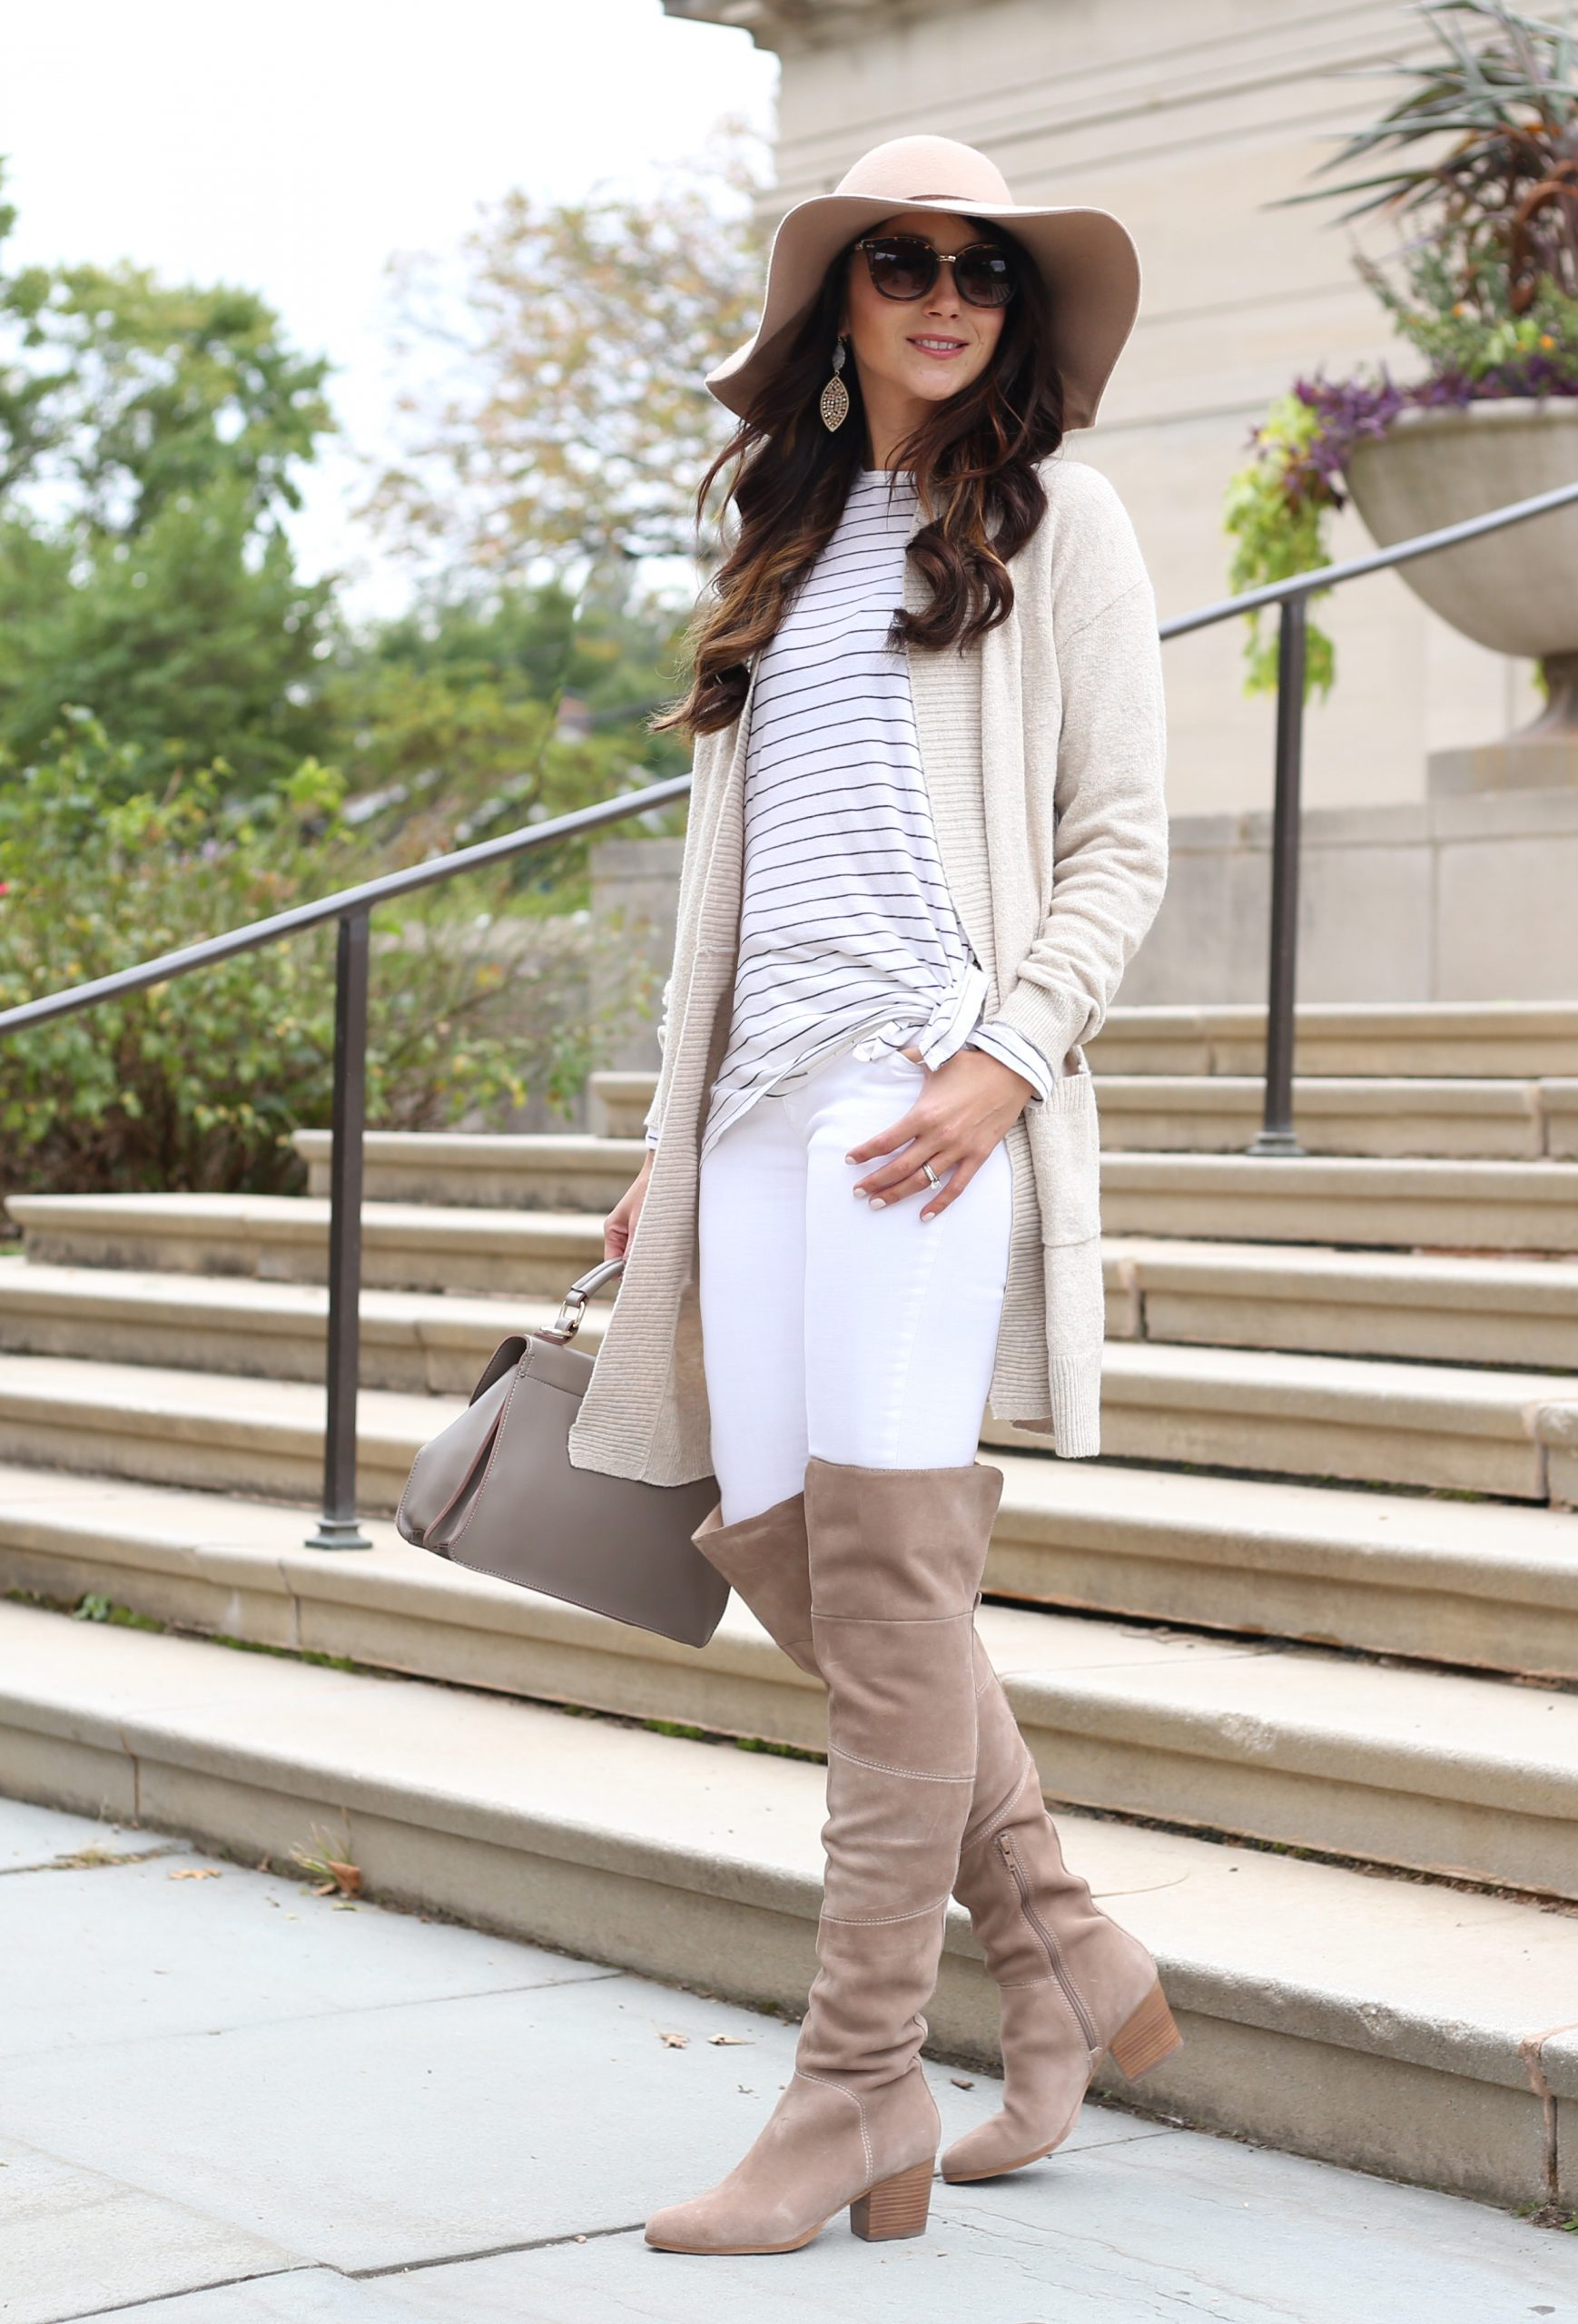 blogger Anna Monteiro of blushing rose style blog wearing cozy fall sweaters and cream color cardigan with striped tee and over the knee boots in this cute fall outfit with floppy hat